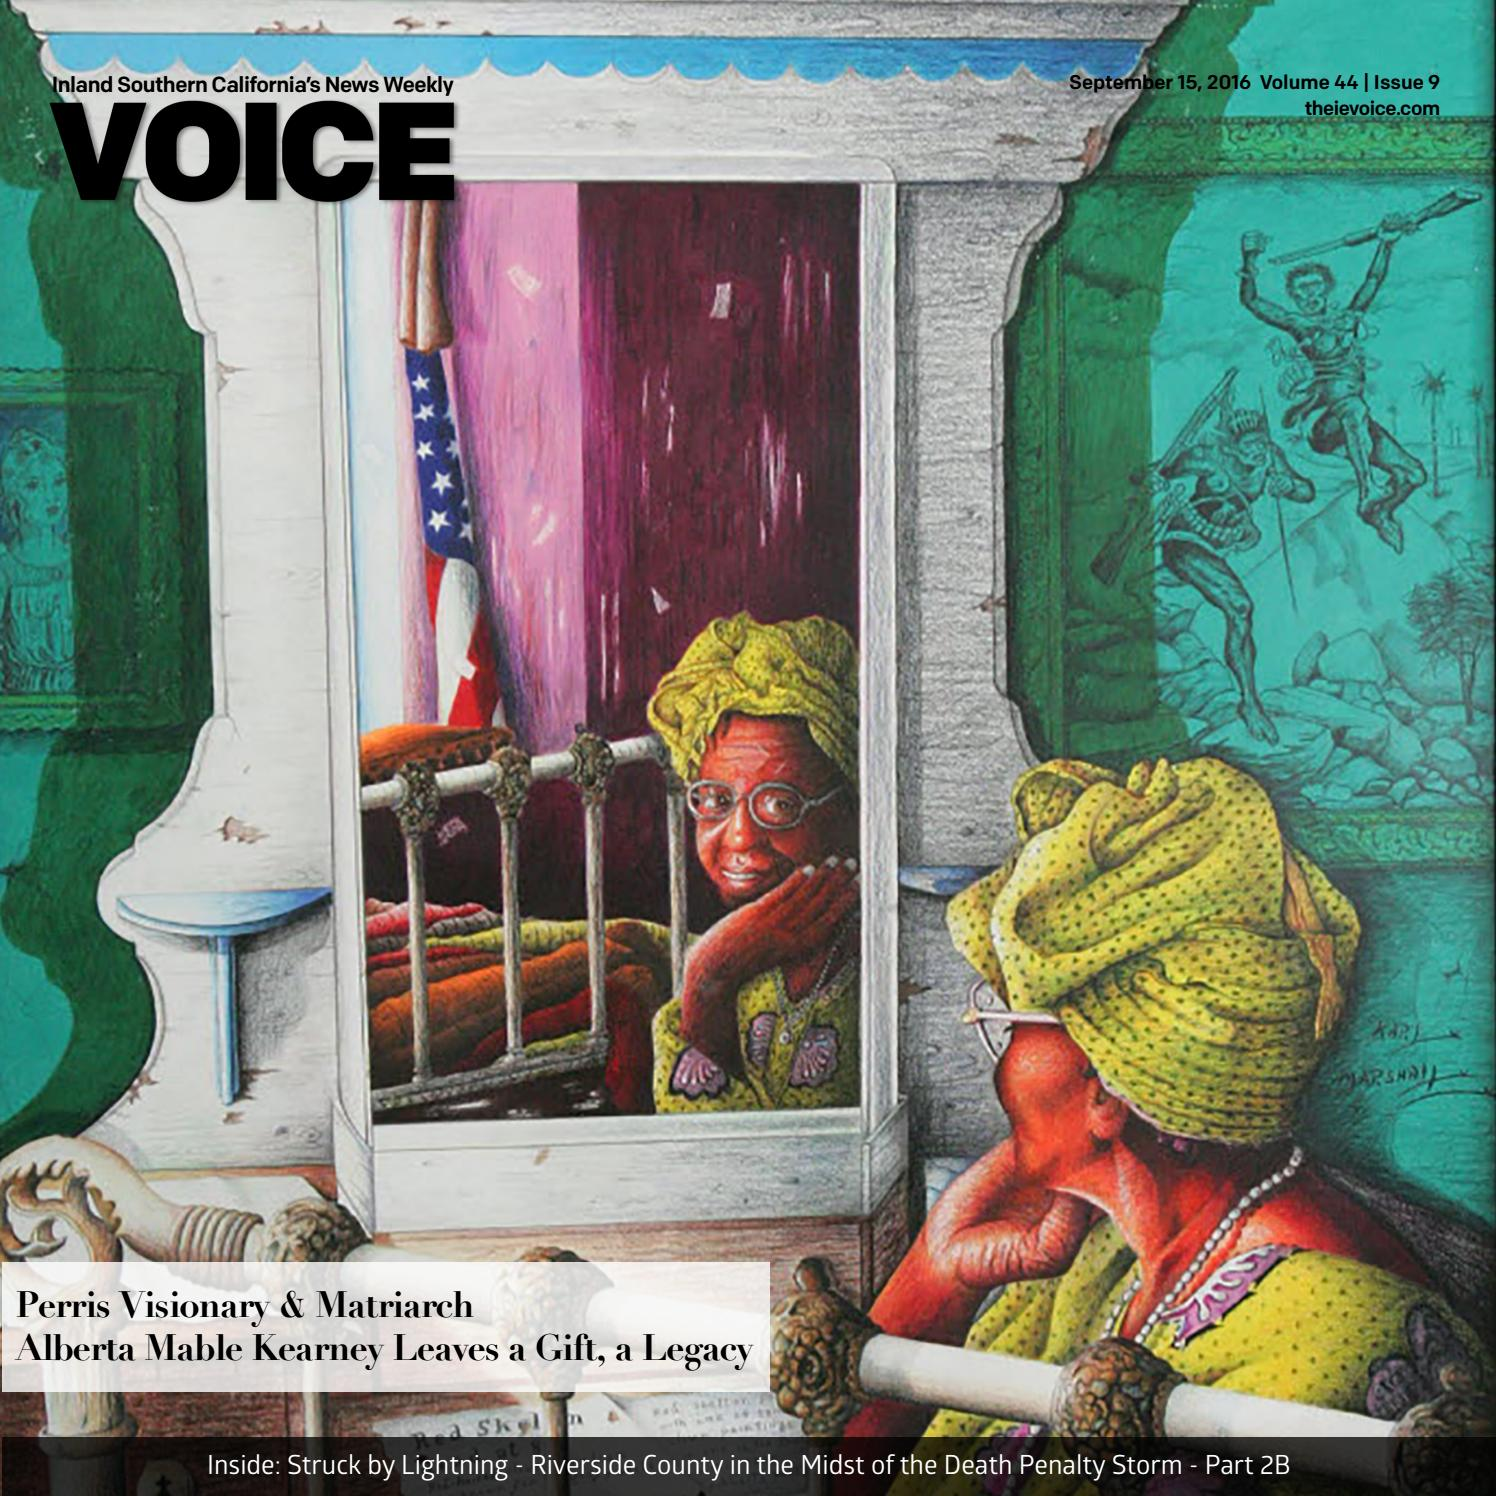 VOICE Issue September 15, 2016 by Brown Publishing Co - issuu